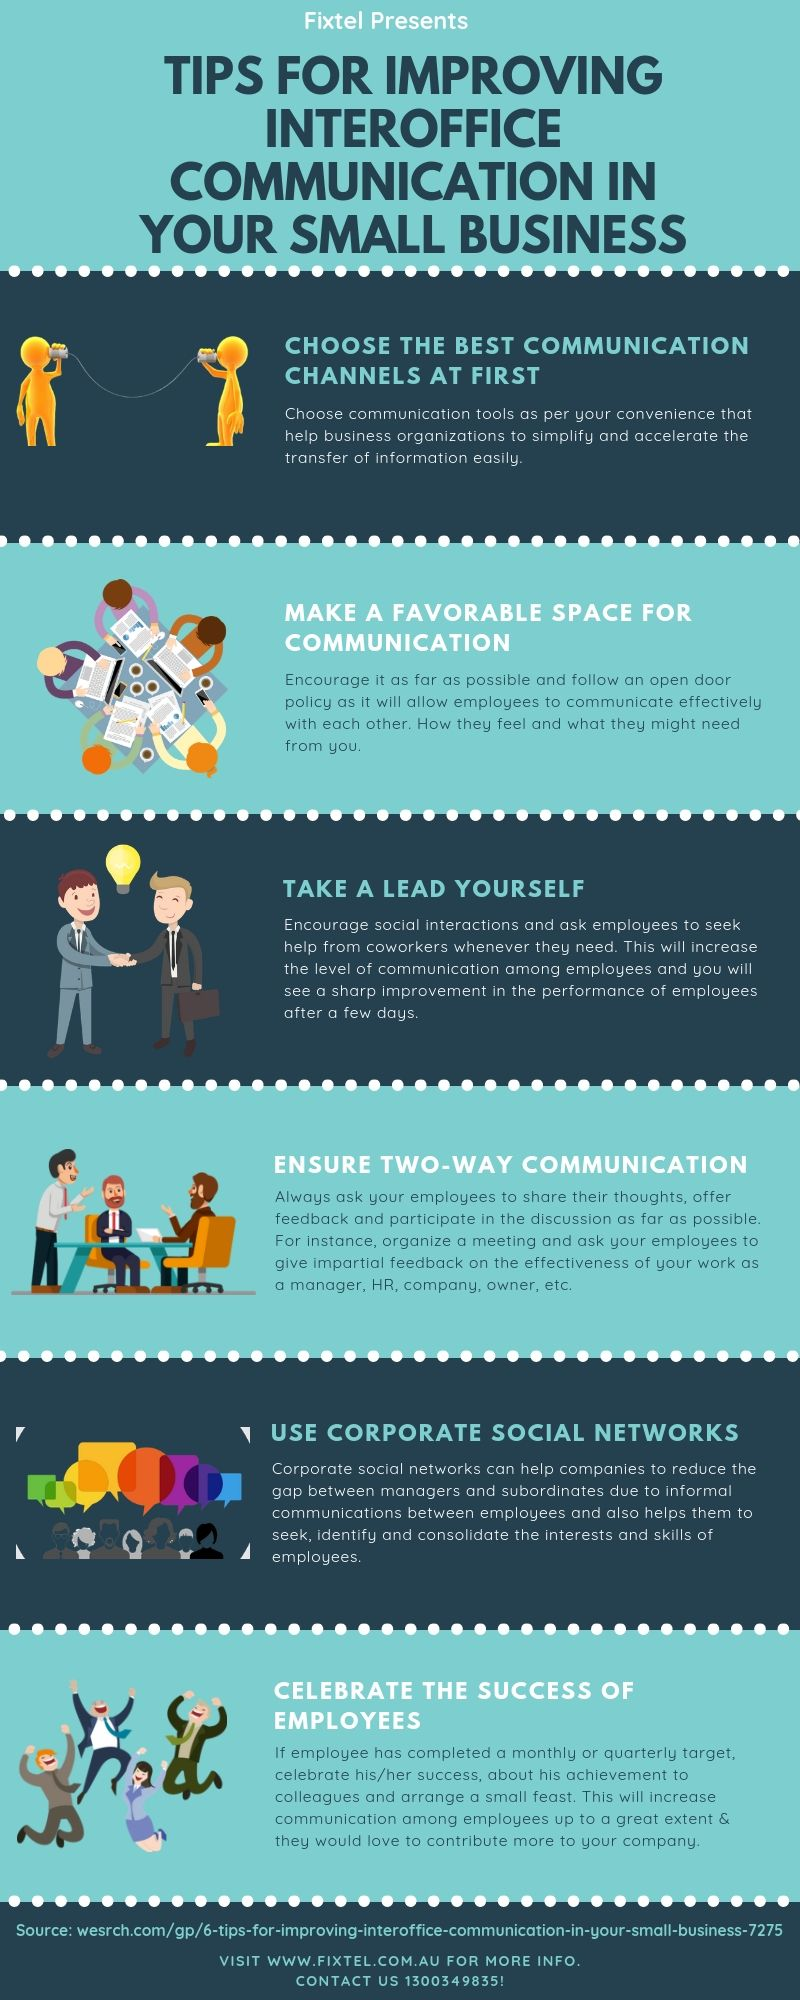 6 Tips For Improving Interoffice Communication In Your